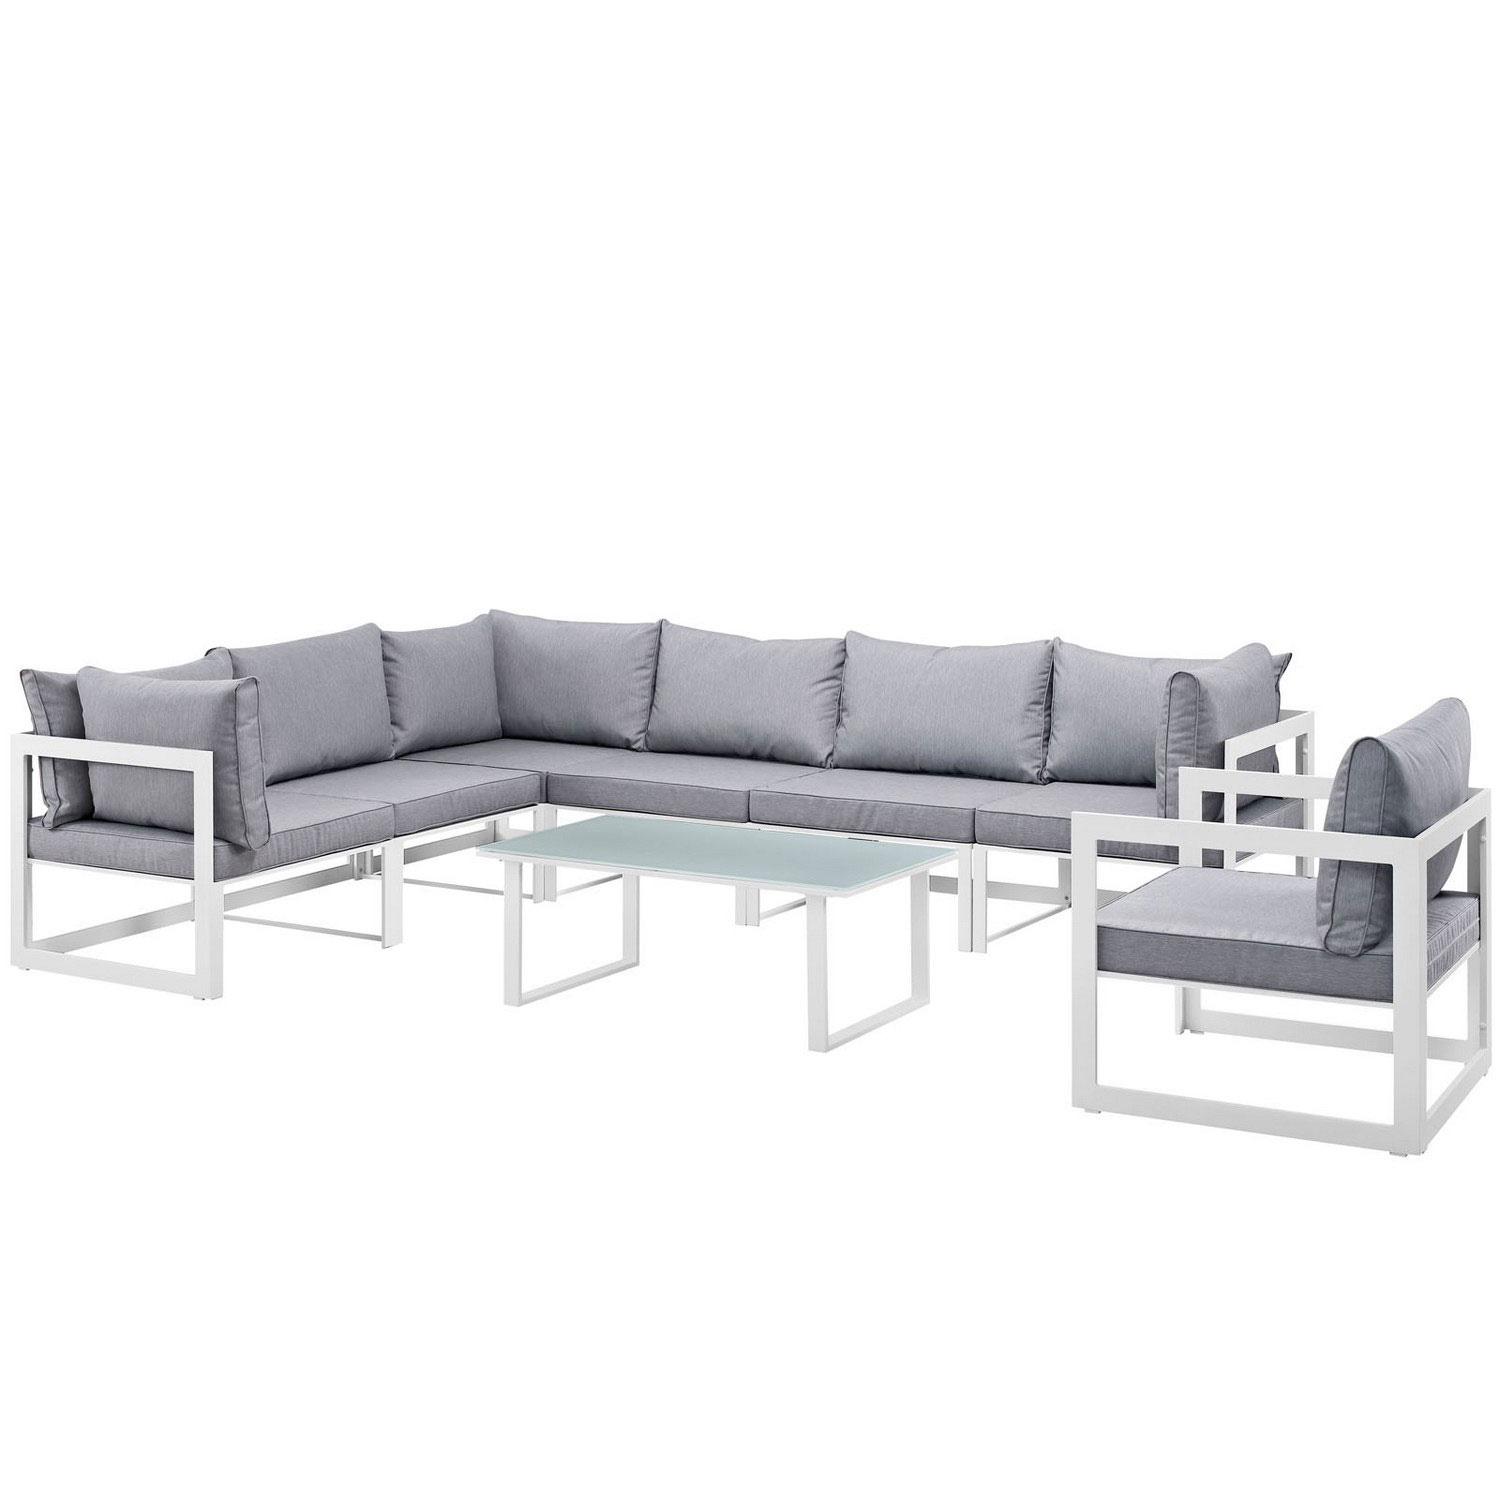 Modway Fortuna 8 Piece Outdoor Patio Sectional Sofa Set White